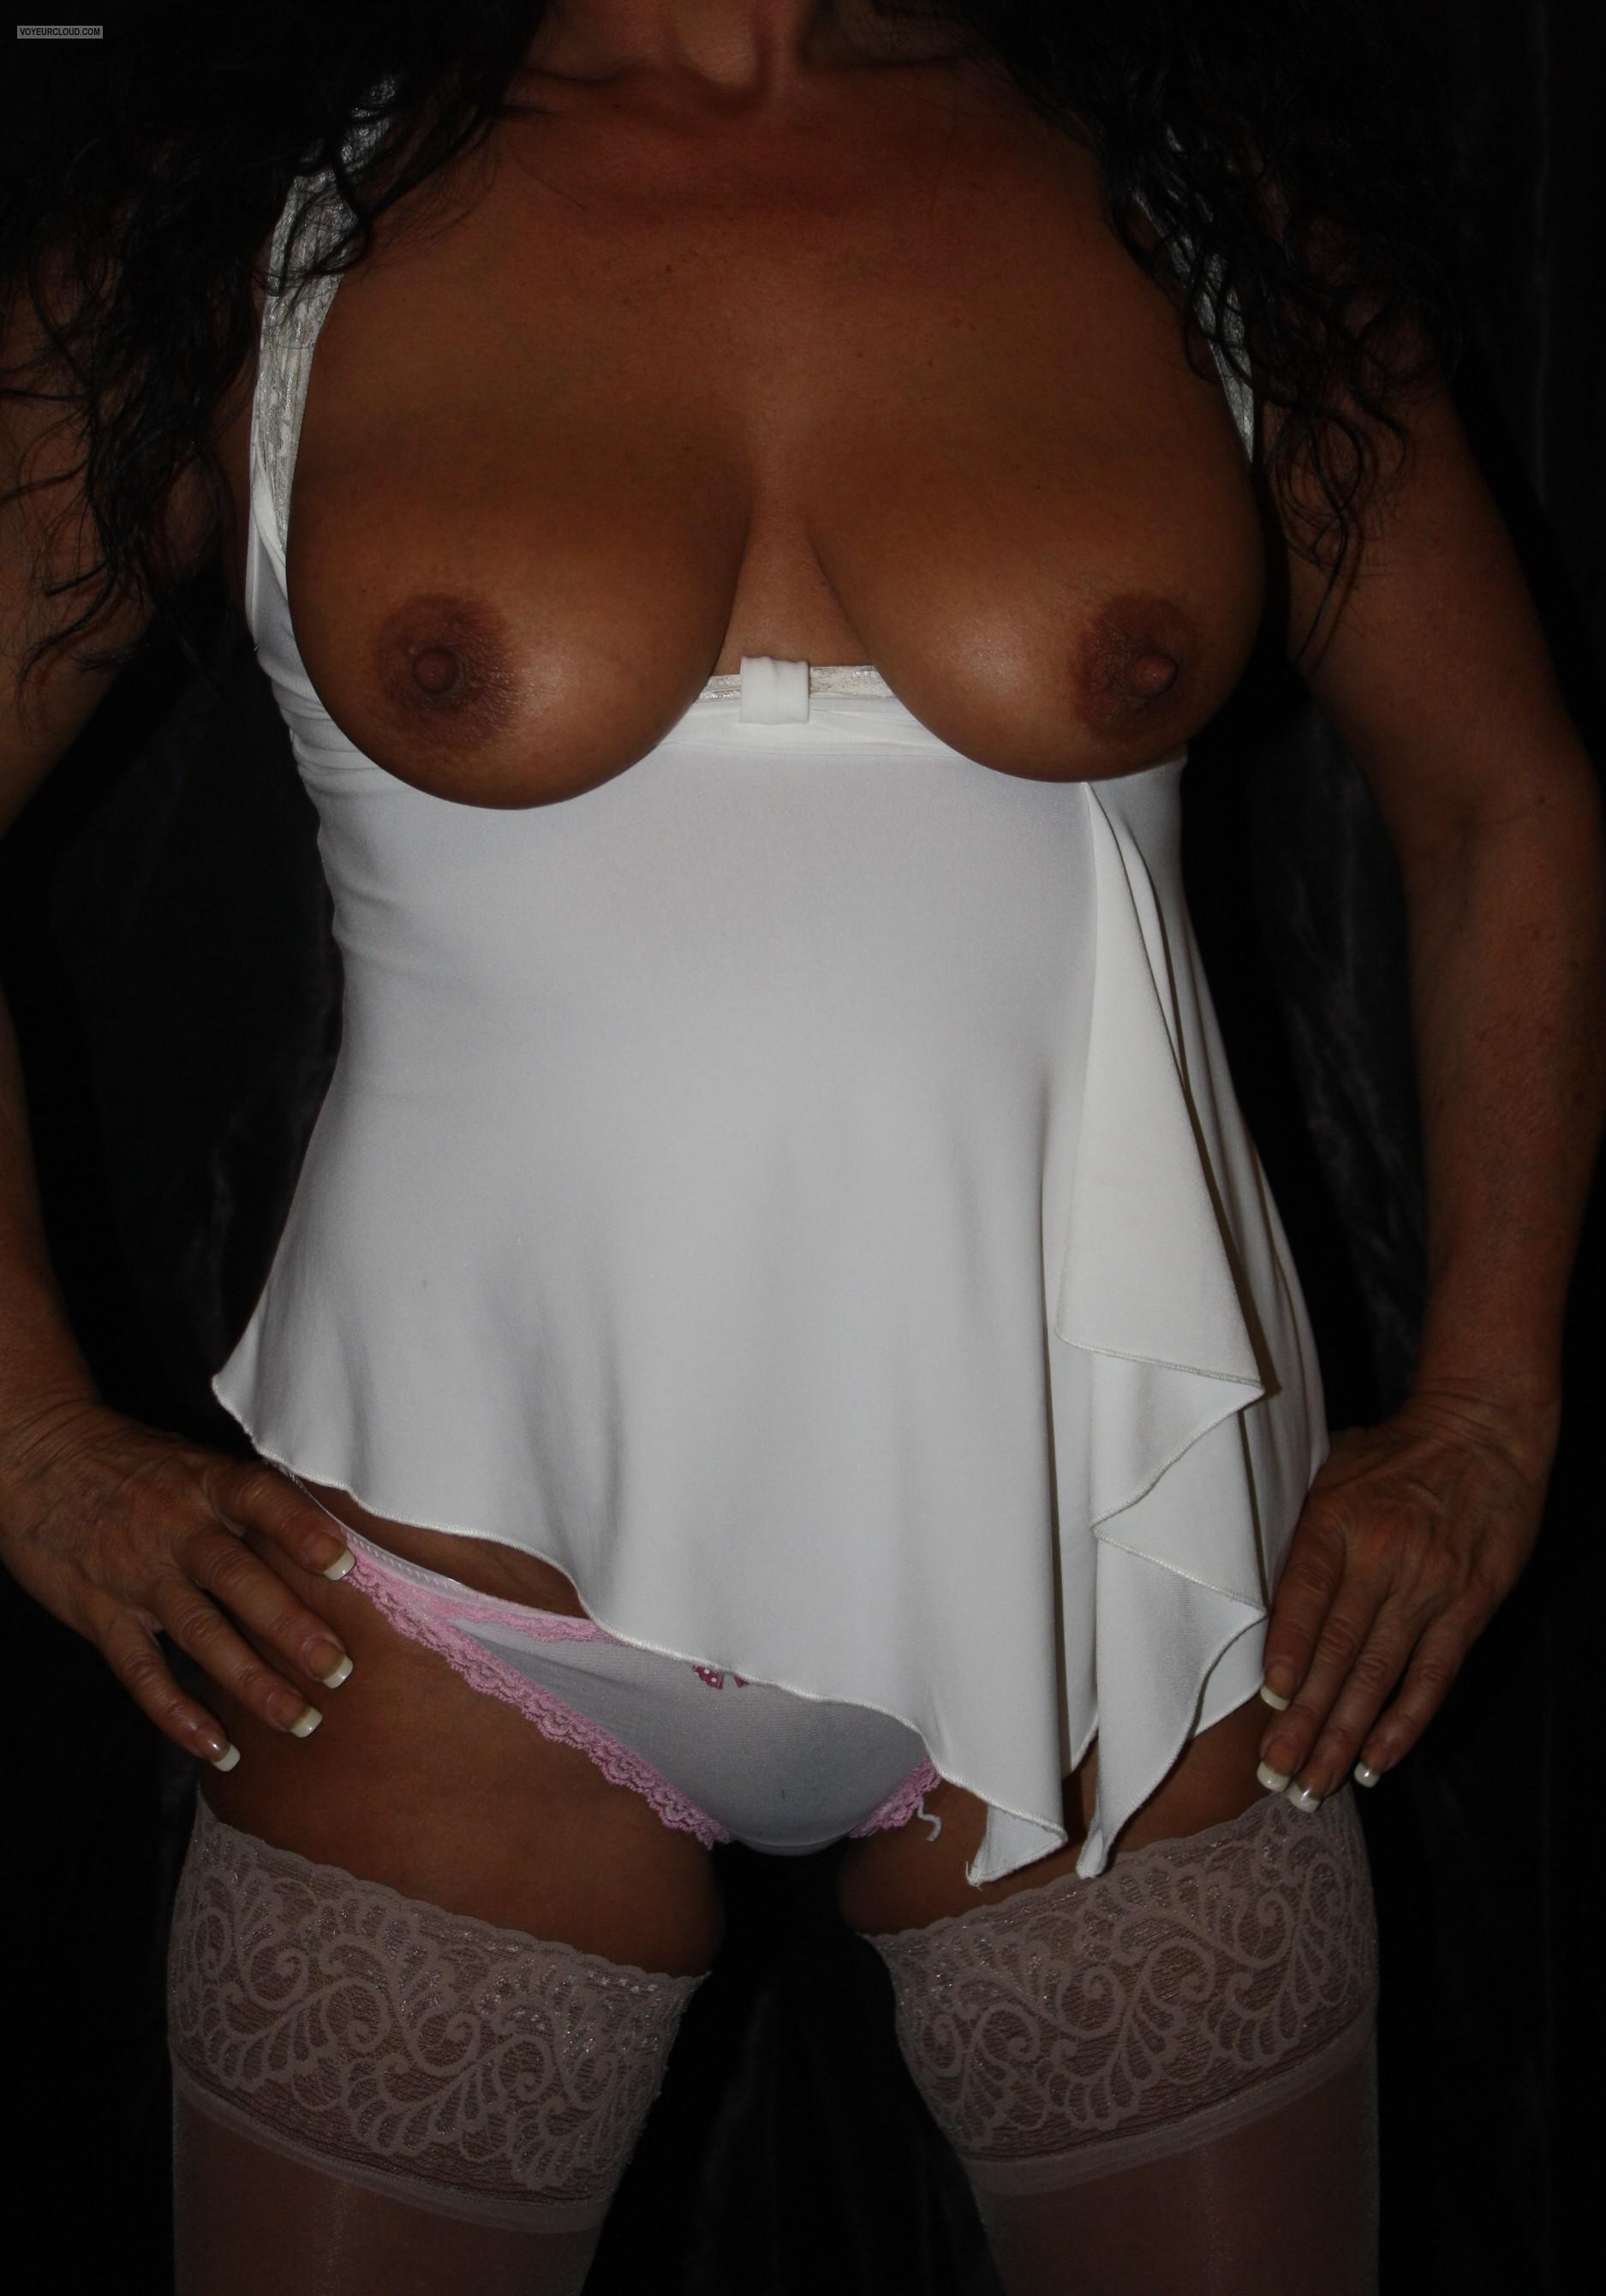 Tit Flash: Wife's Medium Tits - Sexy Italian Wife Lisa from United States